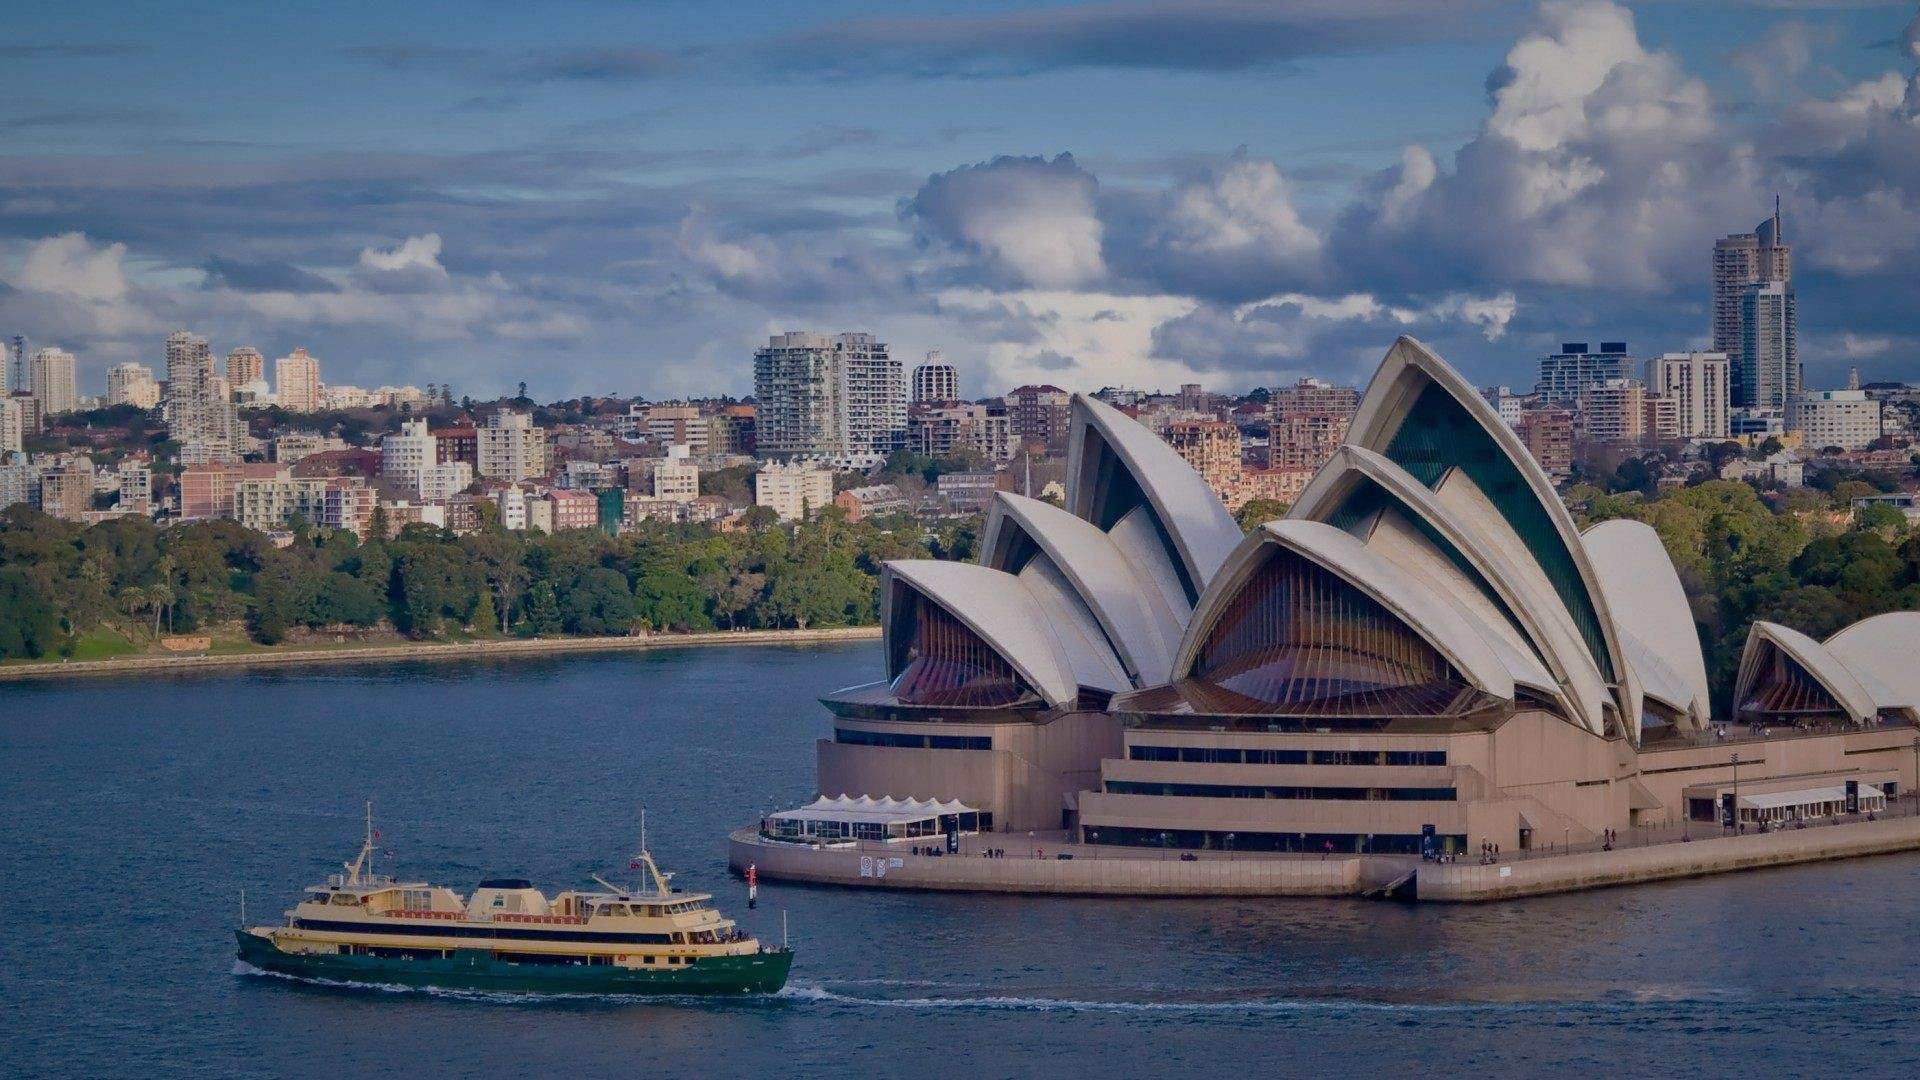 sydney fantastic sea harbour high resolution full screen nice free iphone wallpapers download